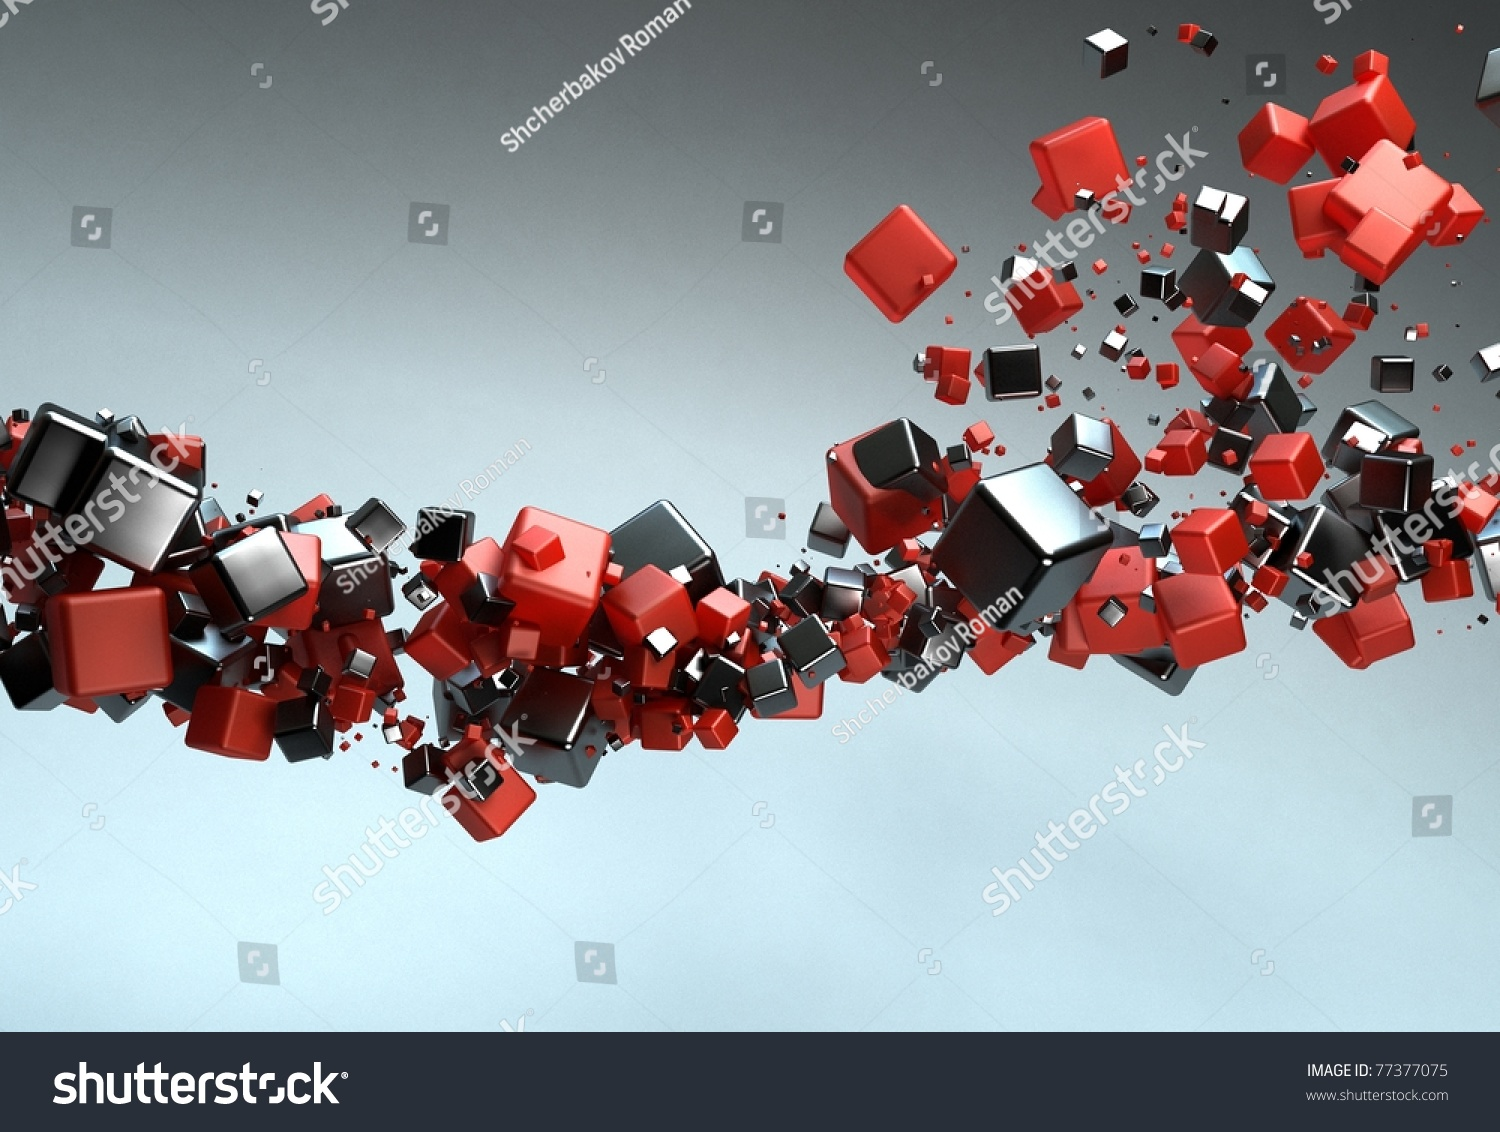 Abstract Particles Stock Photo 77377075 : Shutterstock